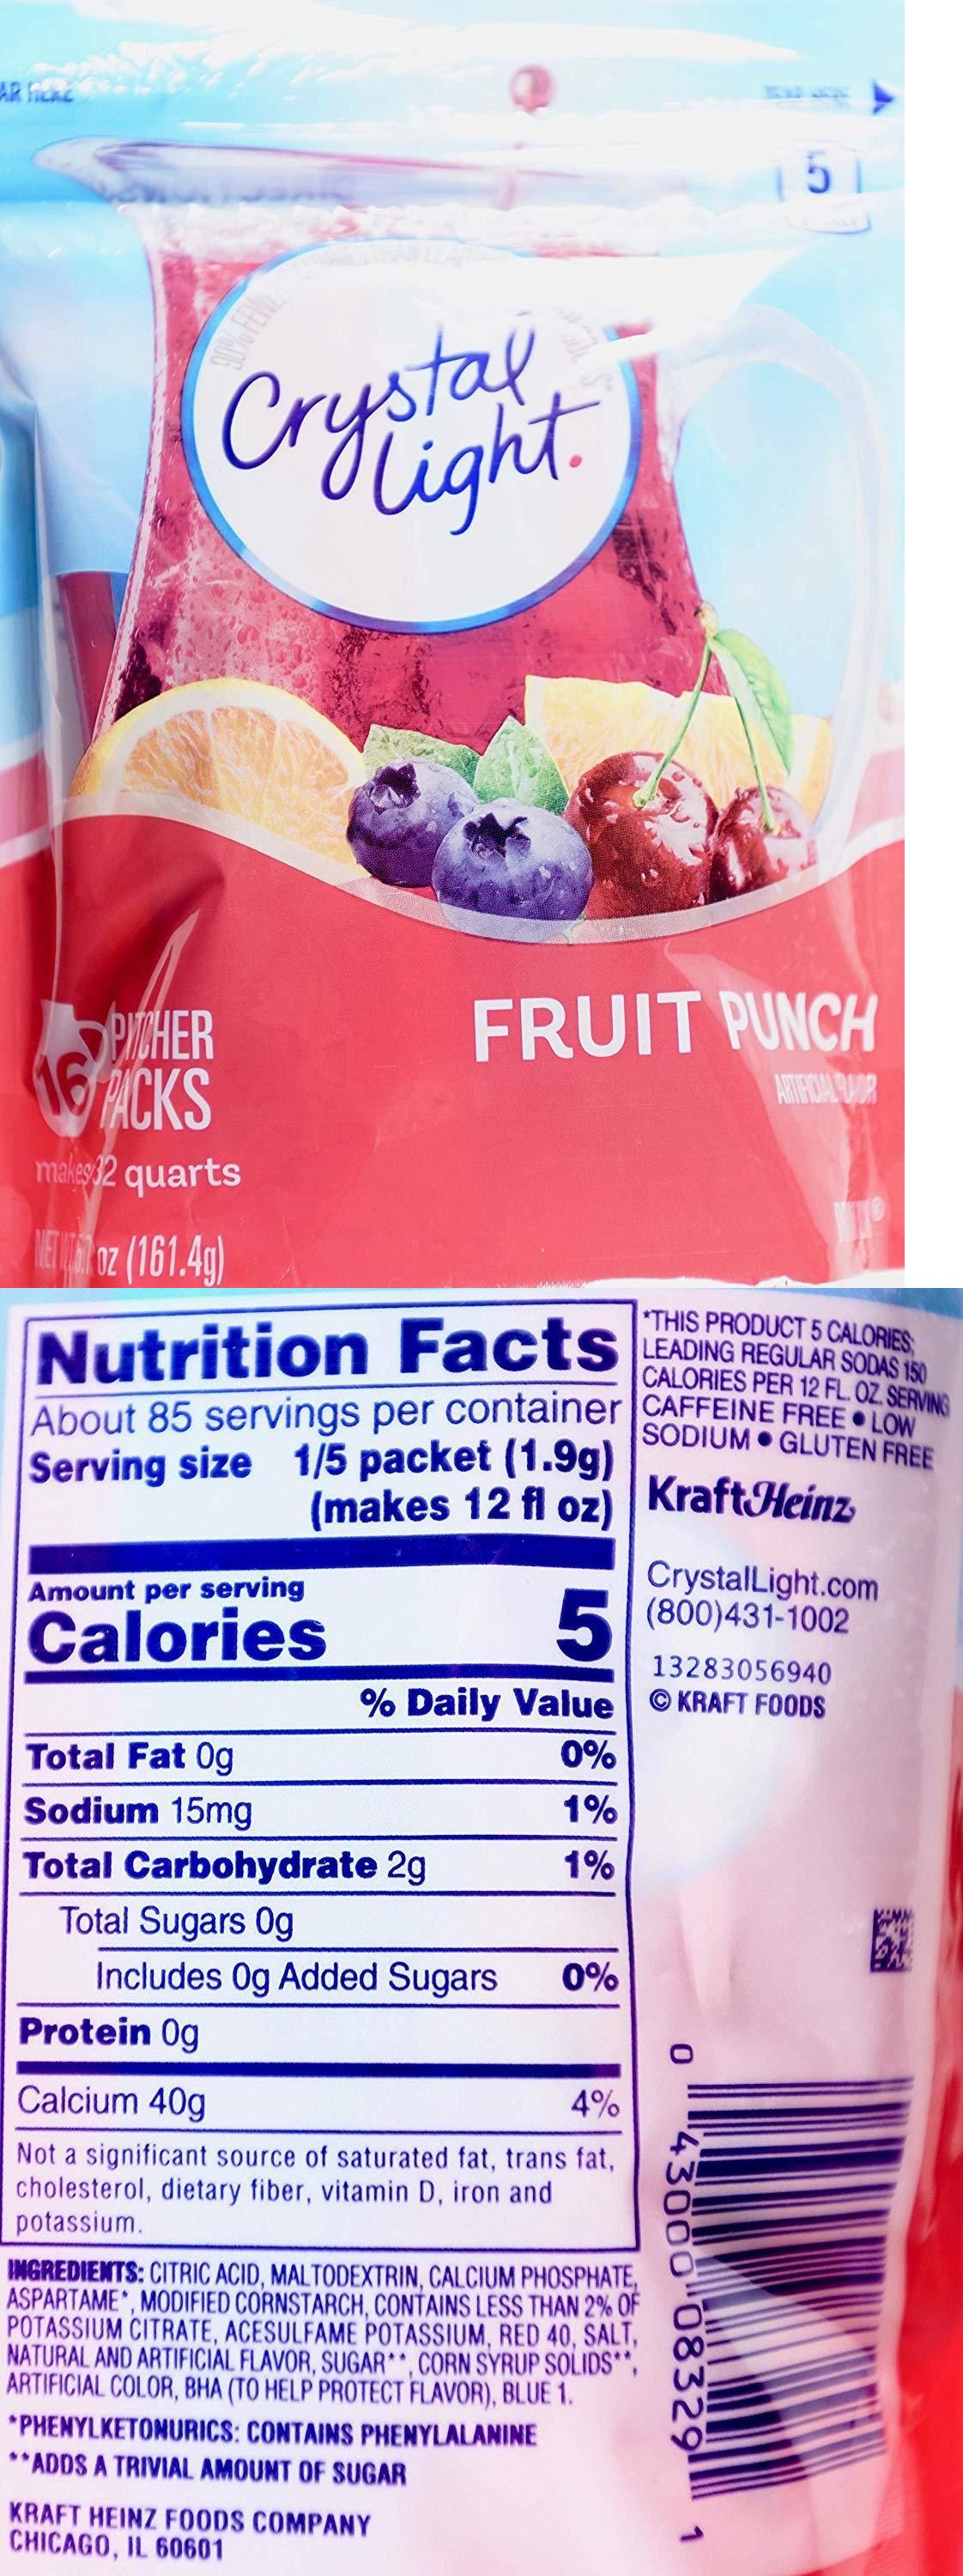 Drink Mixes 179192 Crystal Light Fruit Punch Drink Mix Pitcher Pack 16 Packets Makes 32 Quarts Buy It Now Only 1 Punch Drinks Fruit Punch Mixed Drinks